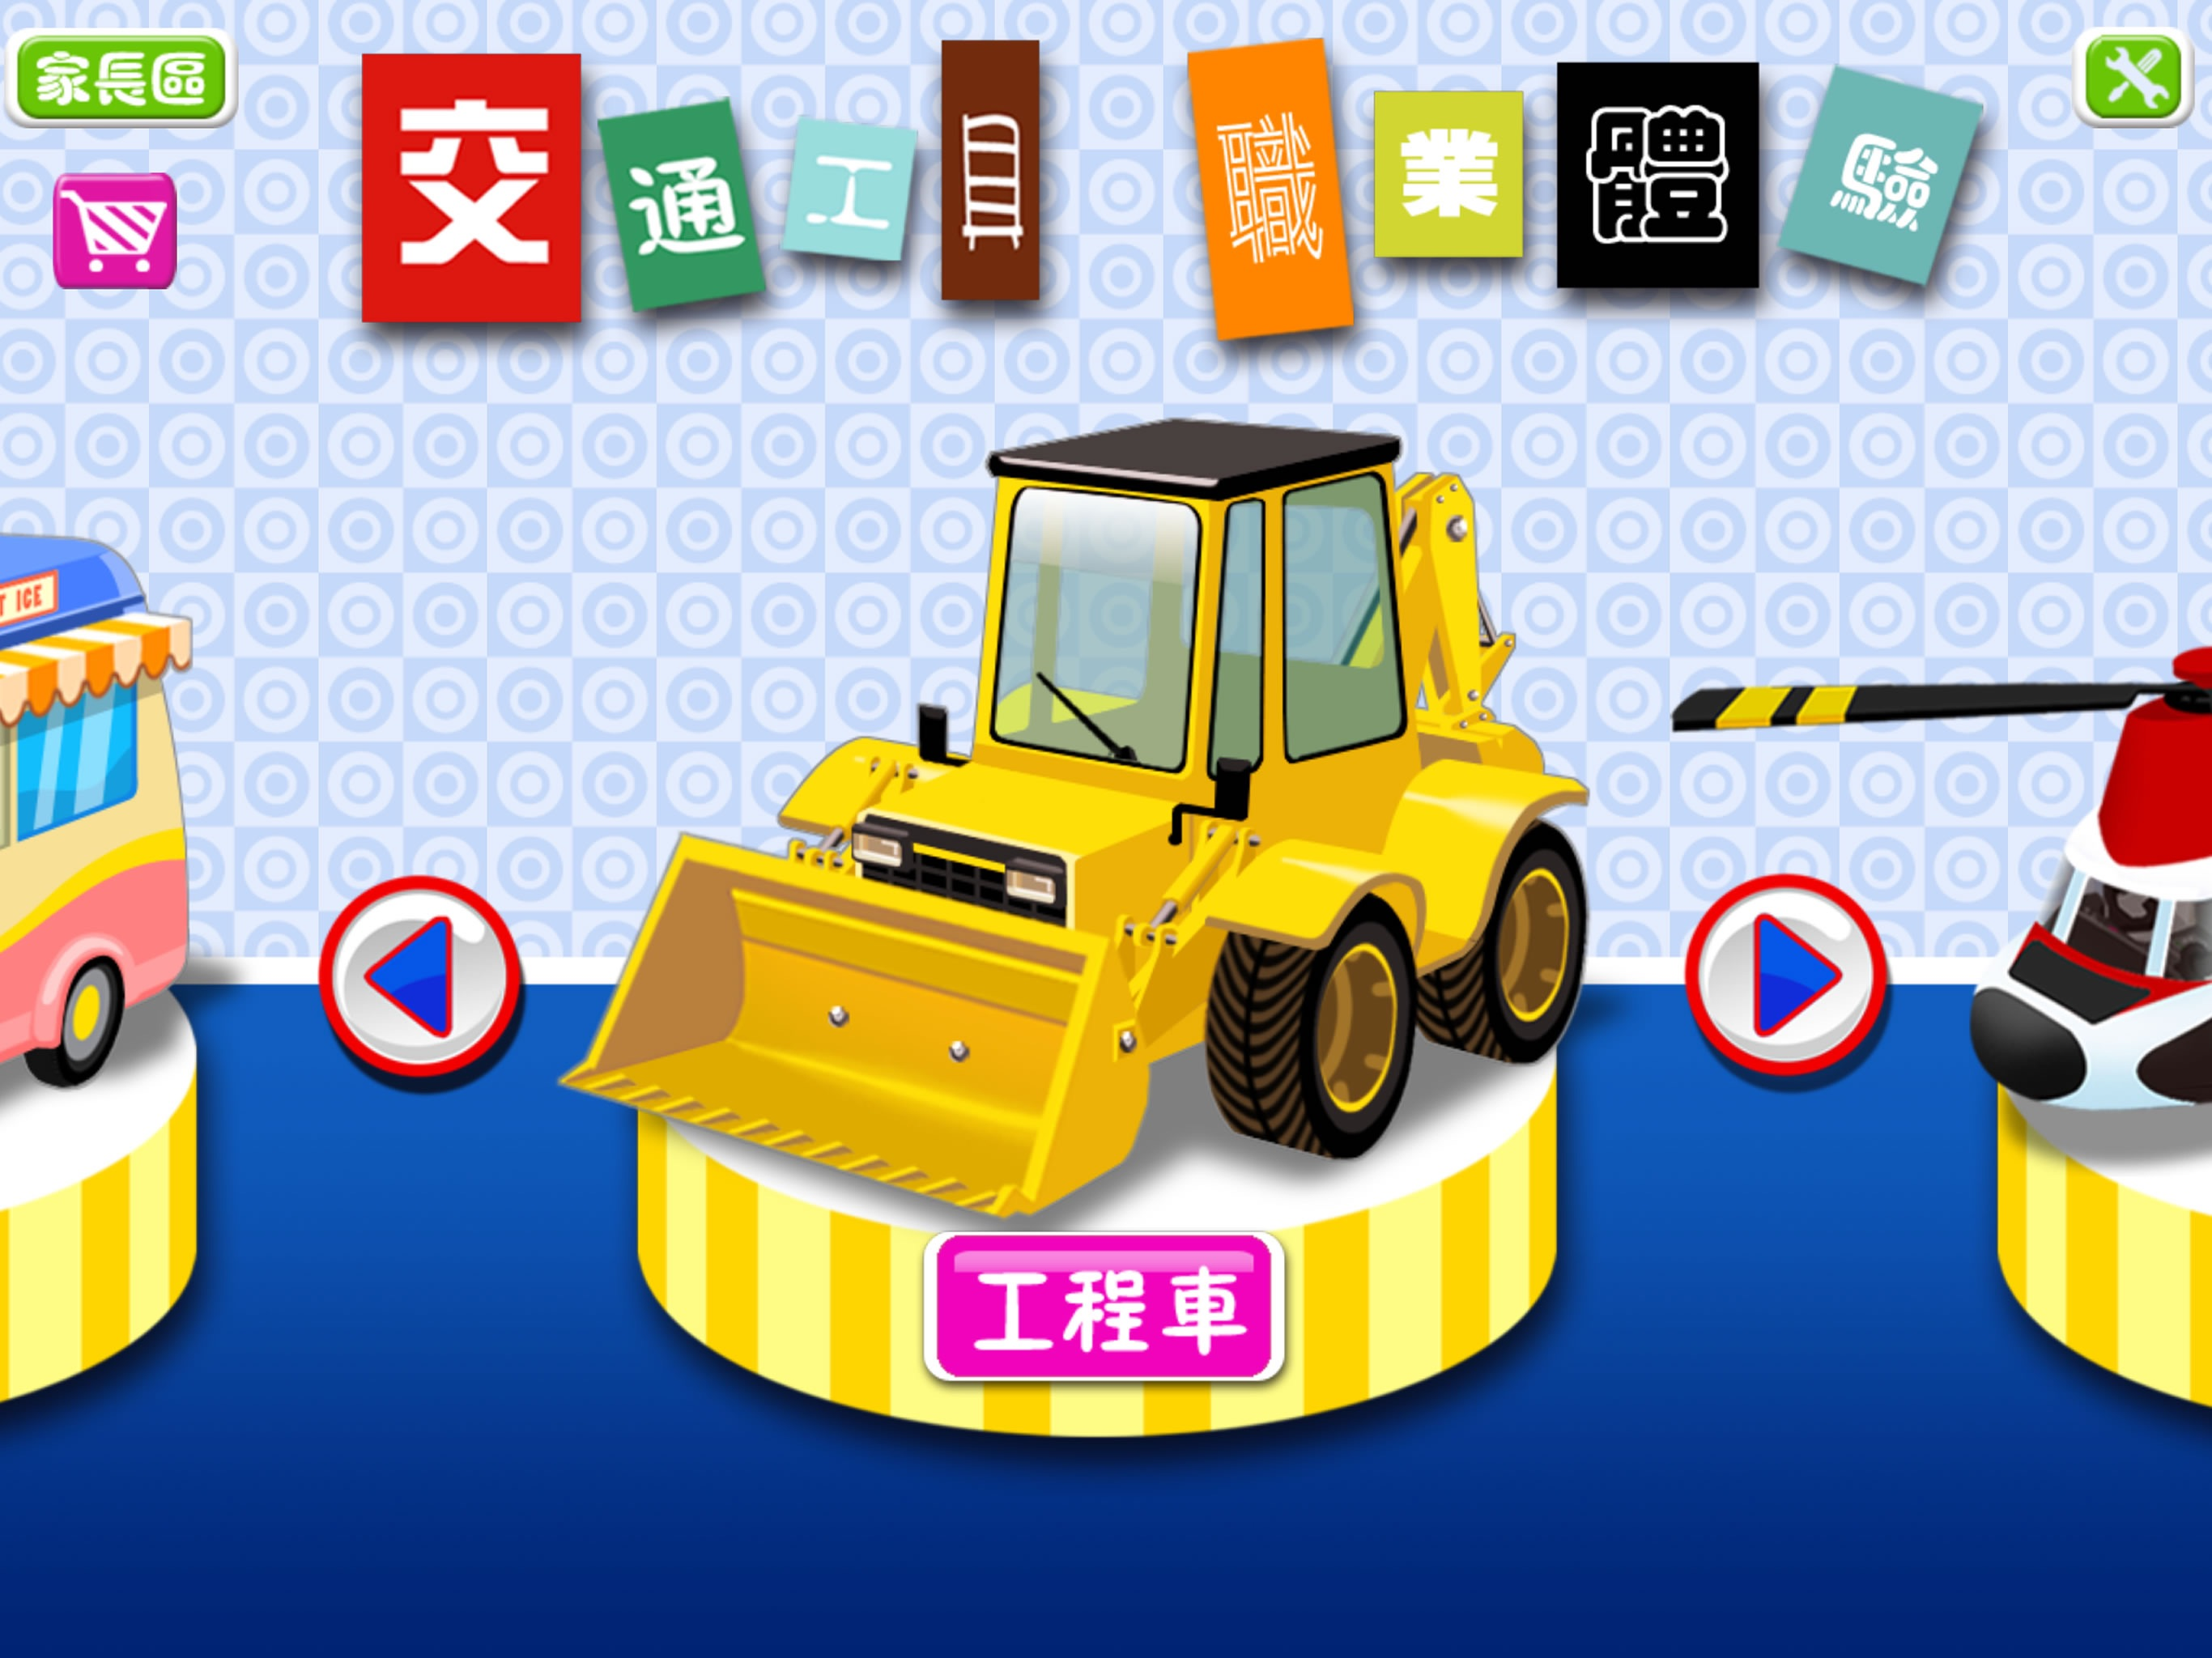 Transport Puzzle Game for Kids-宝宝交通工具拼图游戏: 巴士和挖掘机等